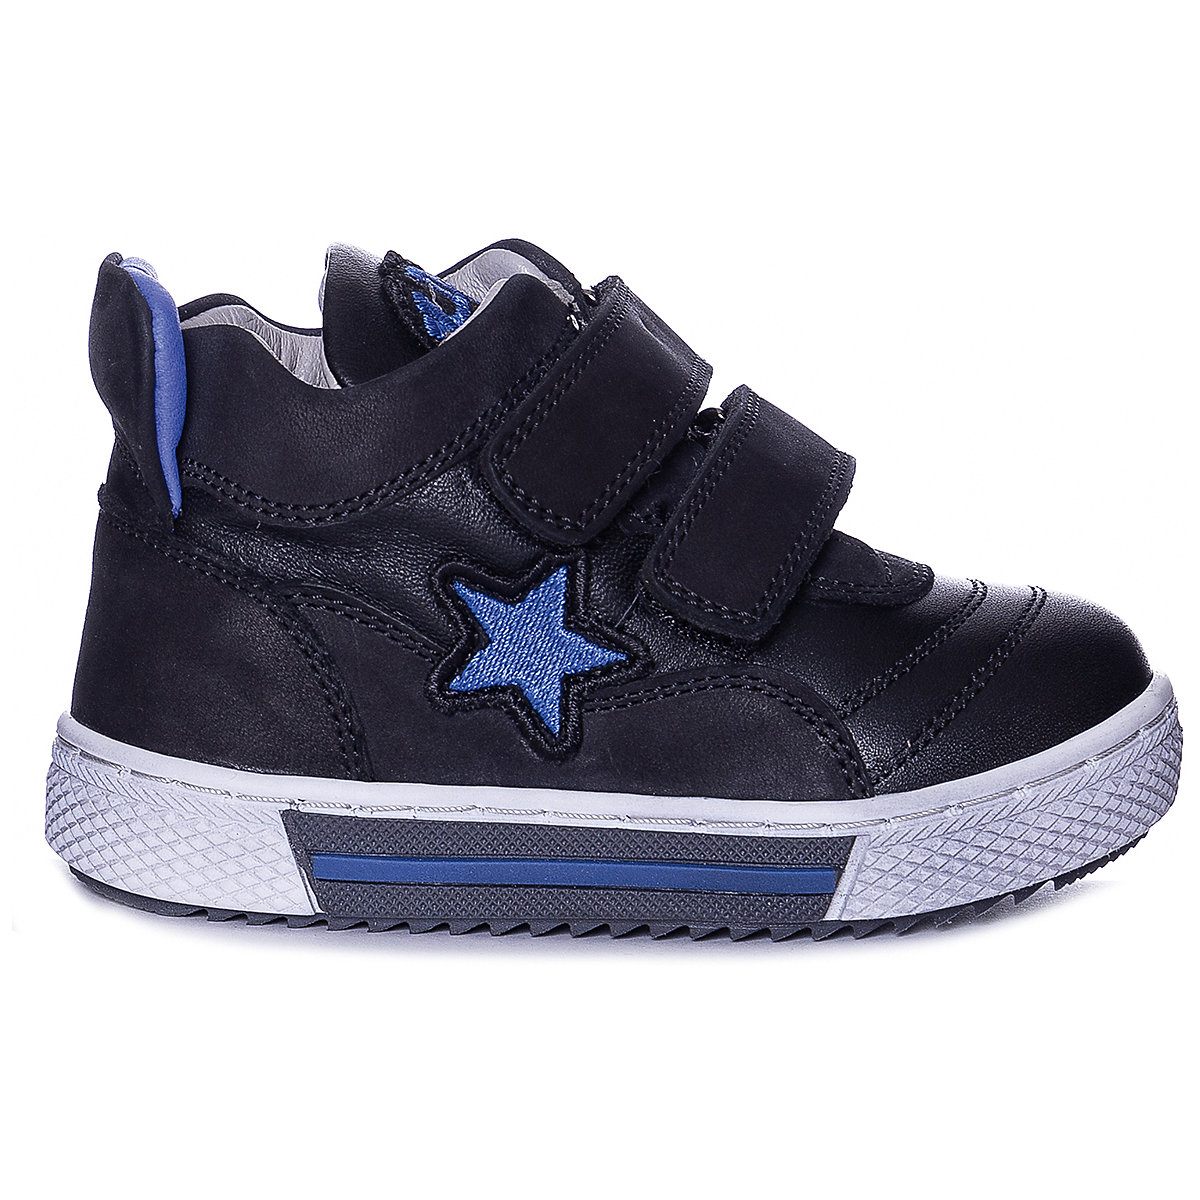 TIFLANI Children Casual Shoes 10924926 sneakers running shoes for children Black sport Boys Leather